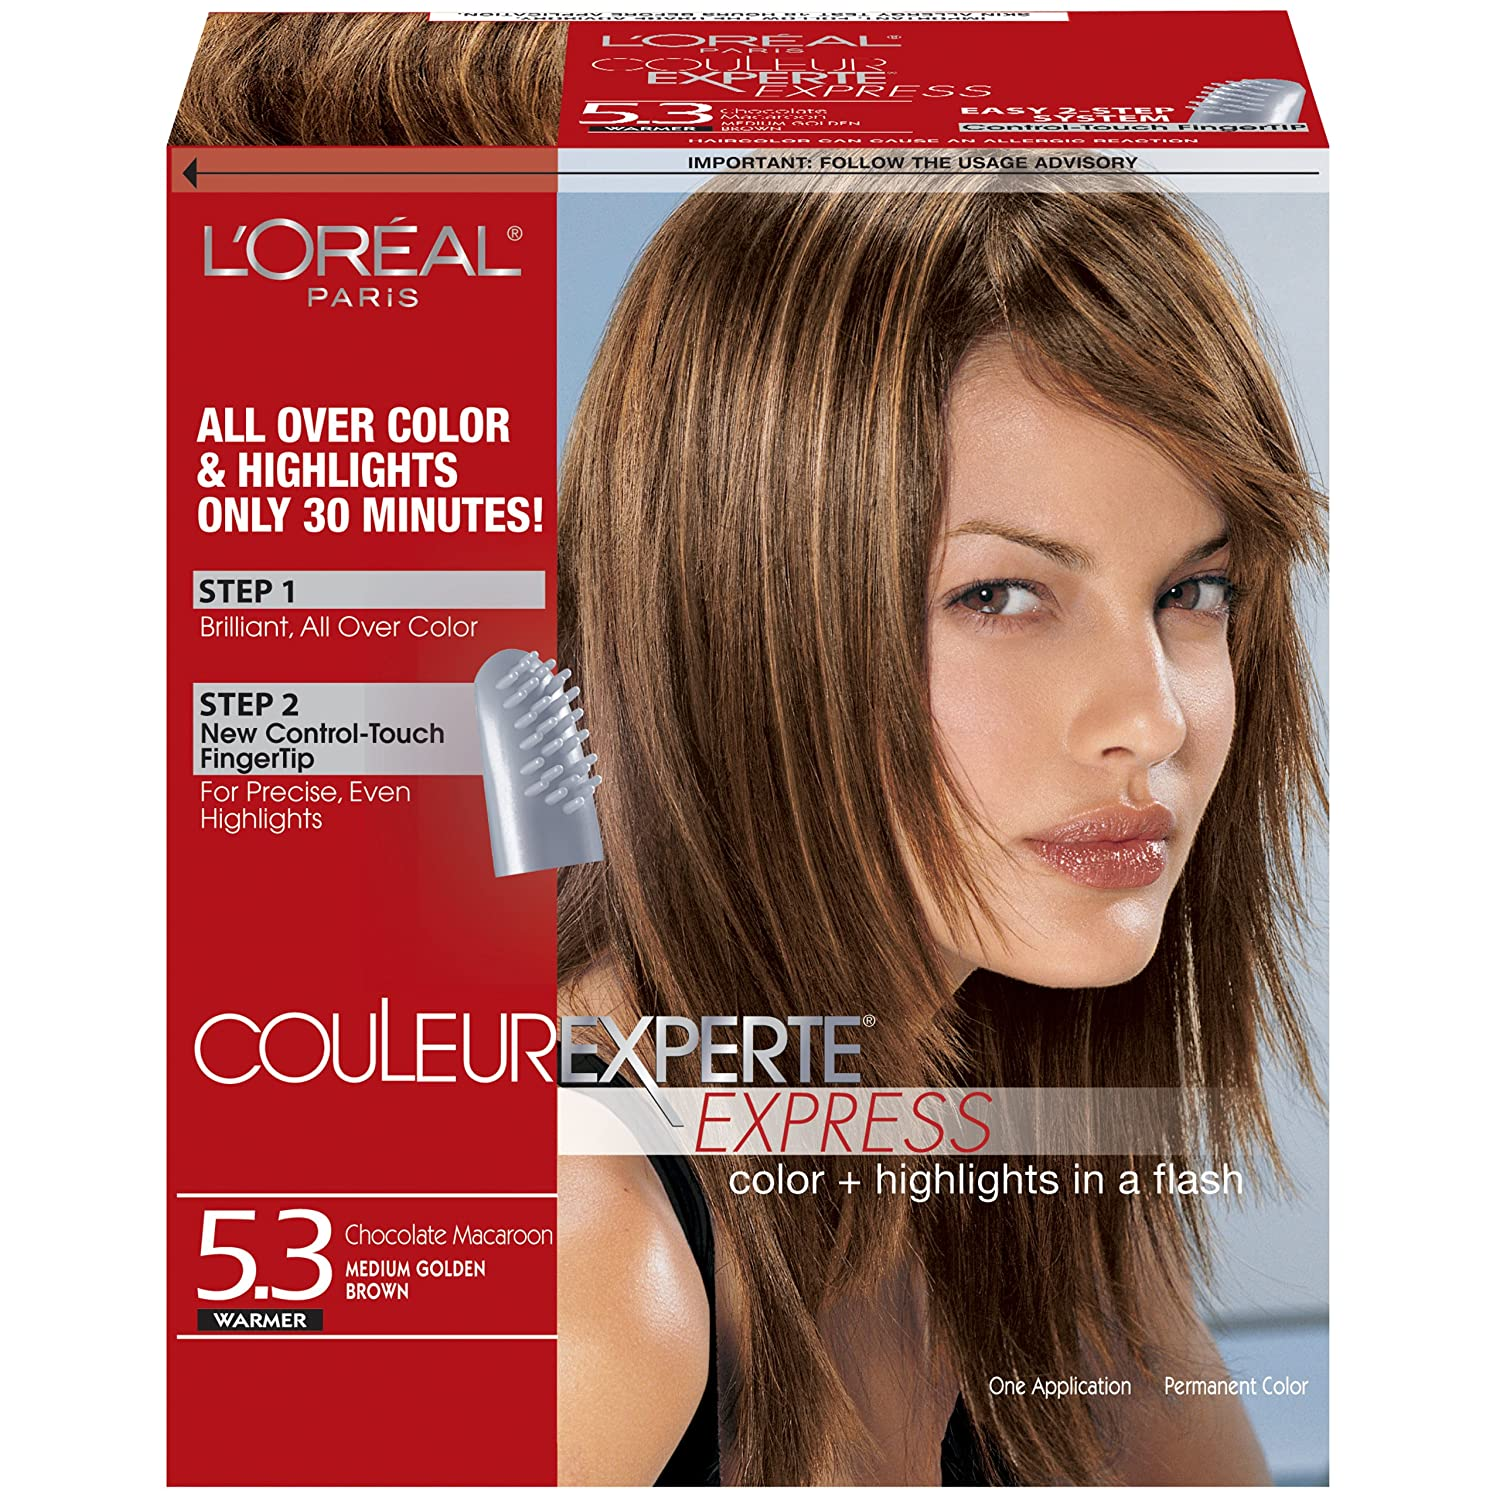 Loreal Paris Couleur Experte Express Hair Color 53 Medium Golden